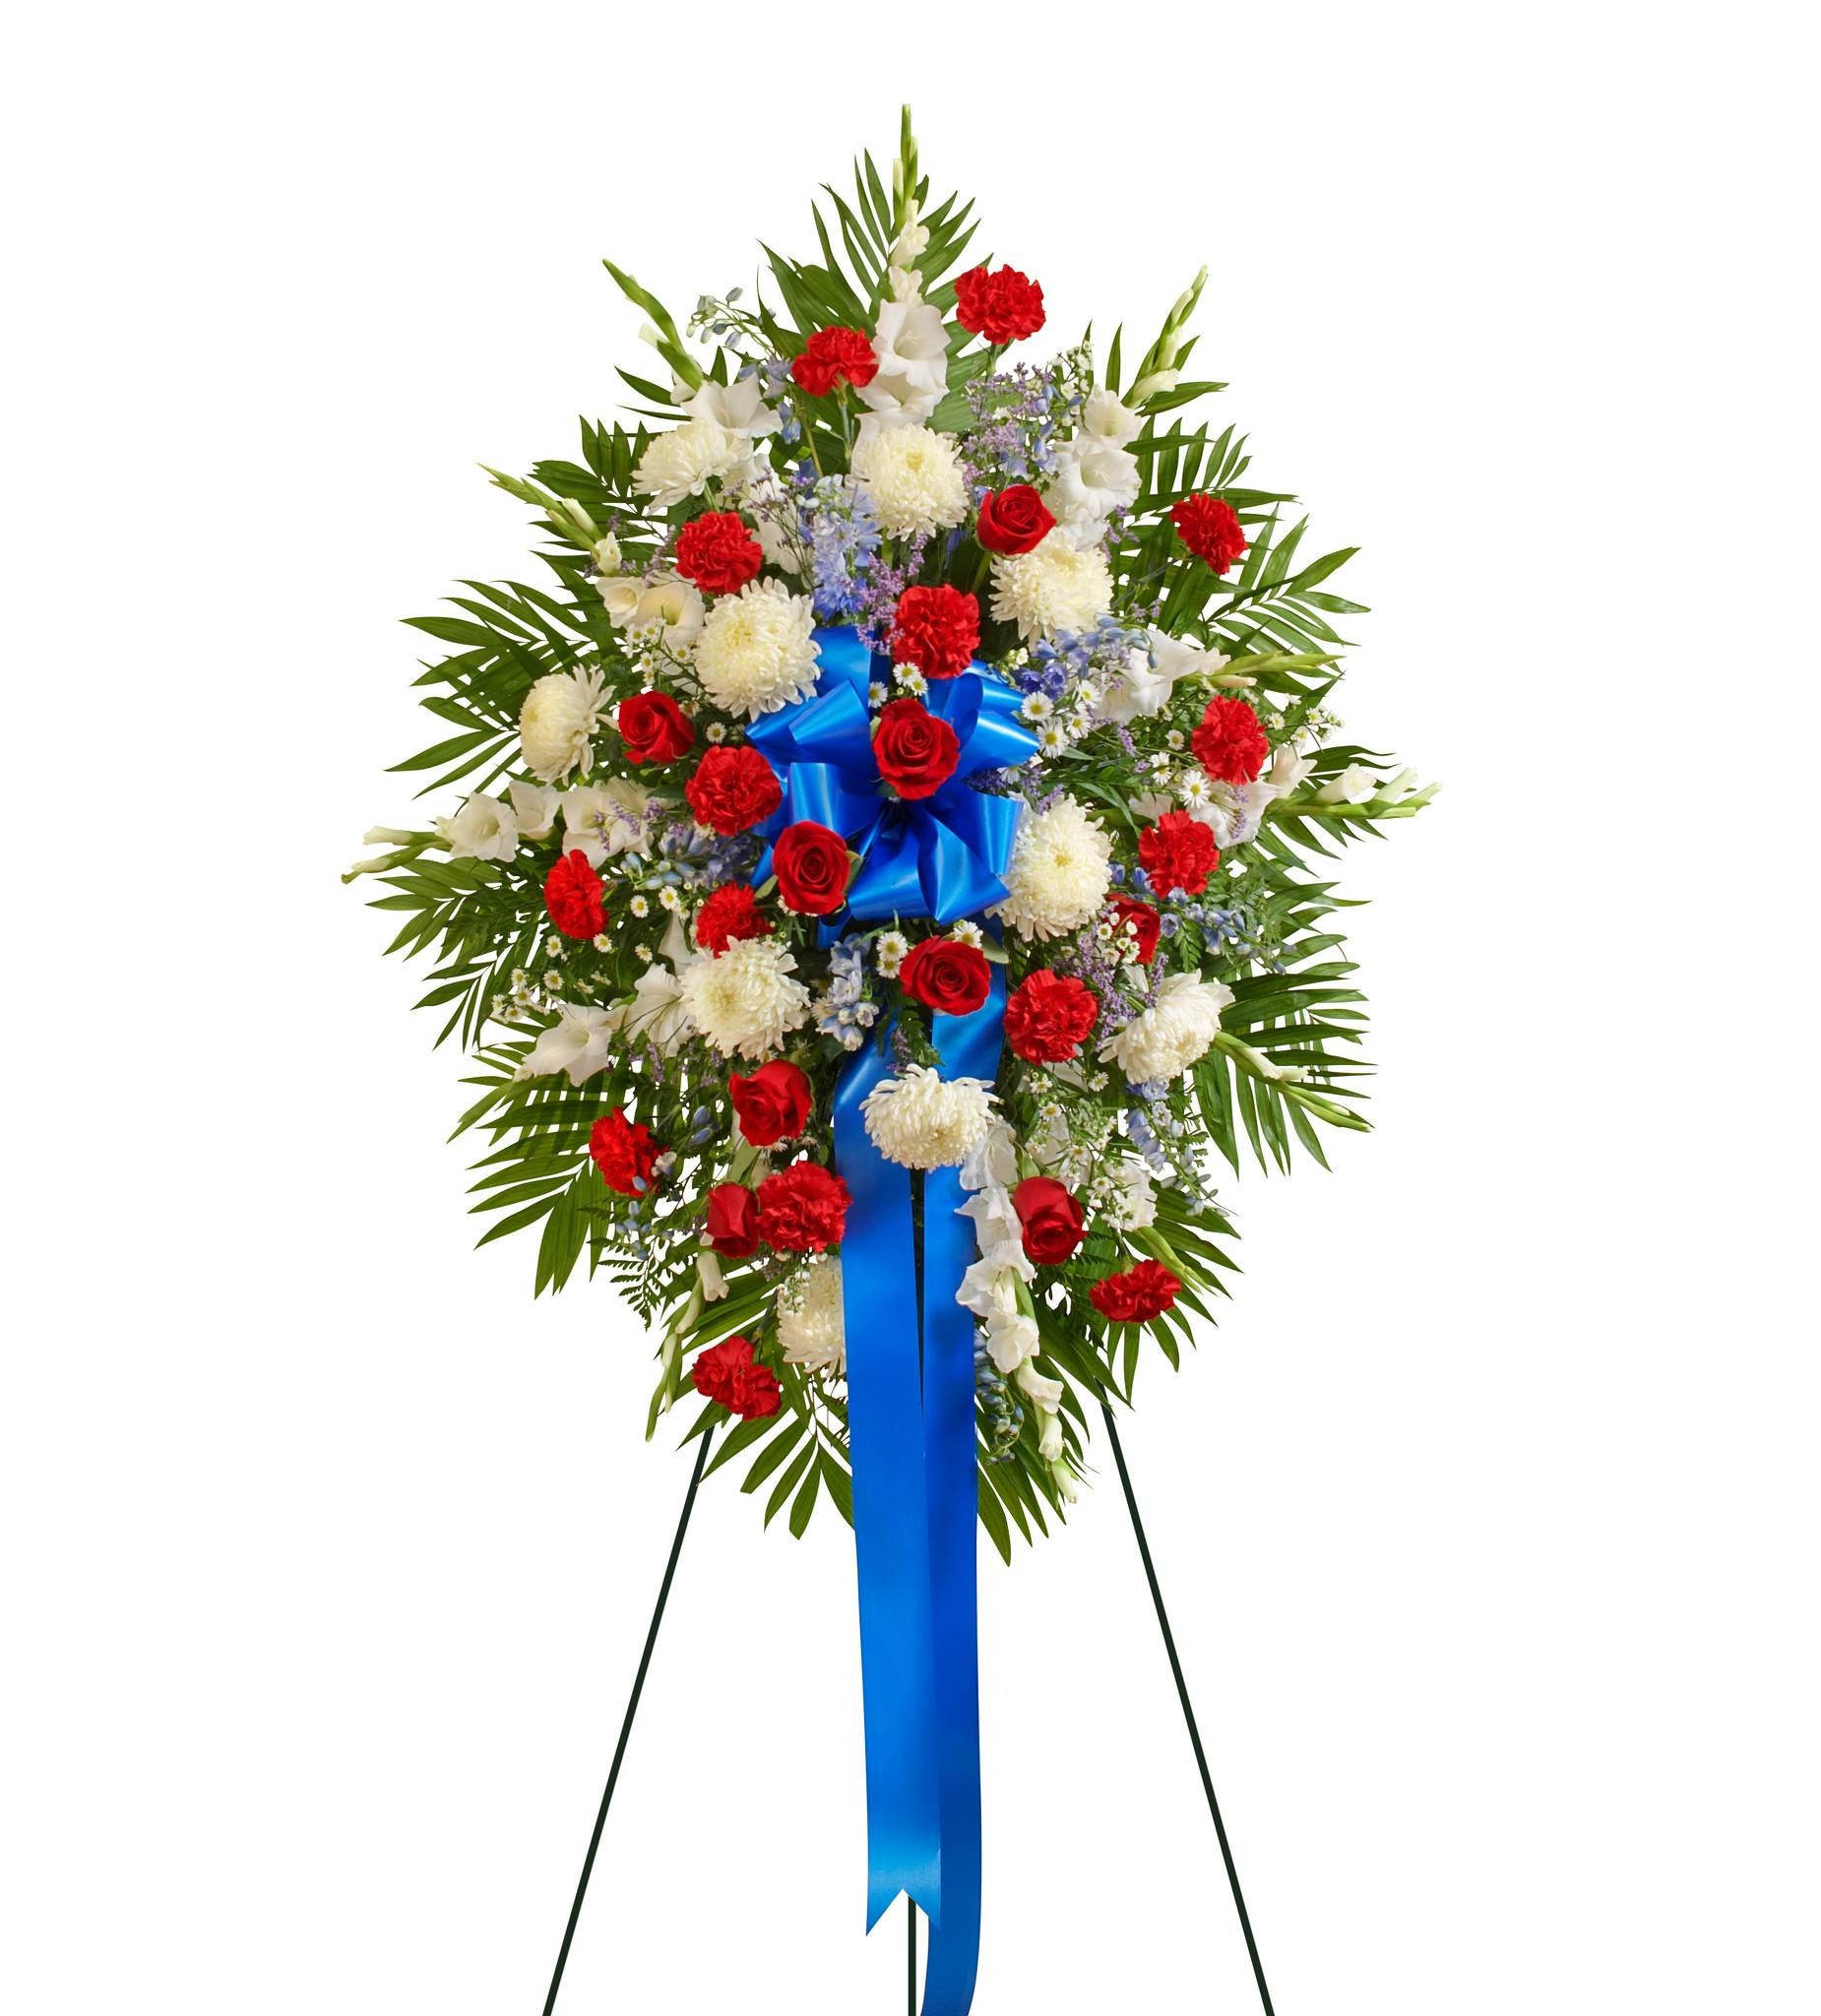 Funeral wreaths funeral sprays florists heartfelt red white blue izmirmasajfo